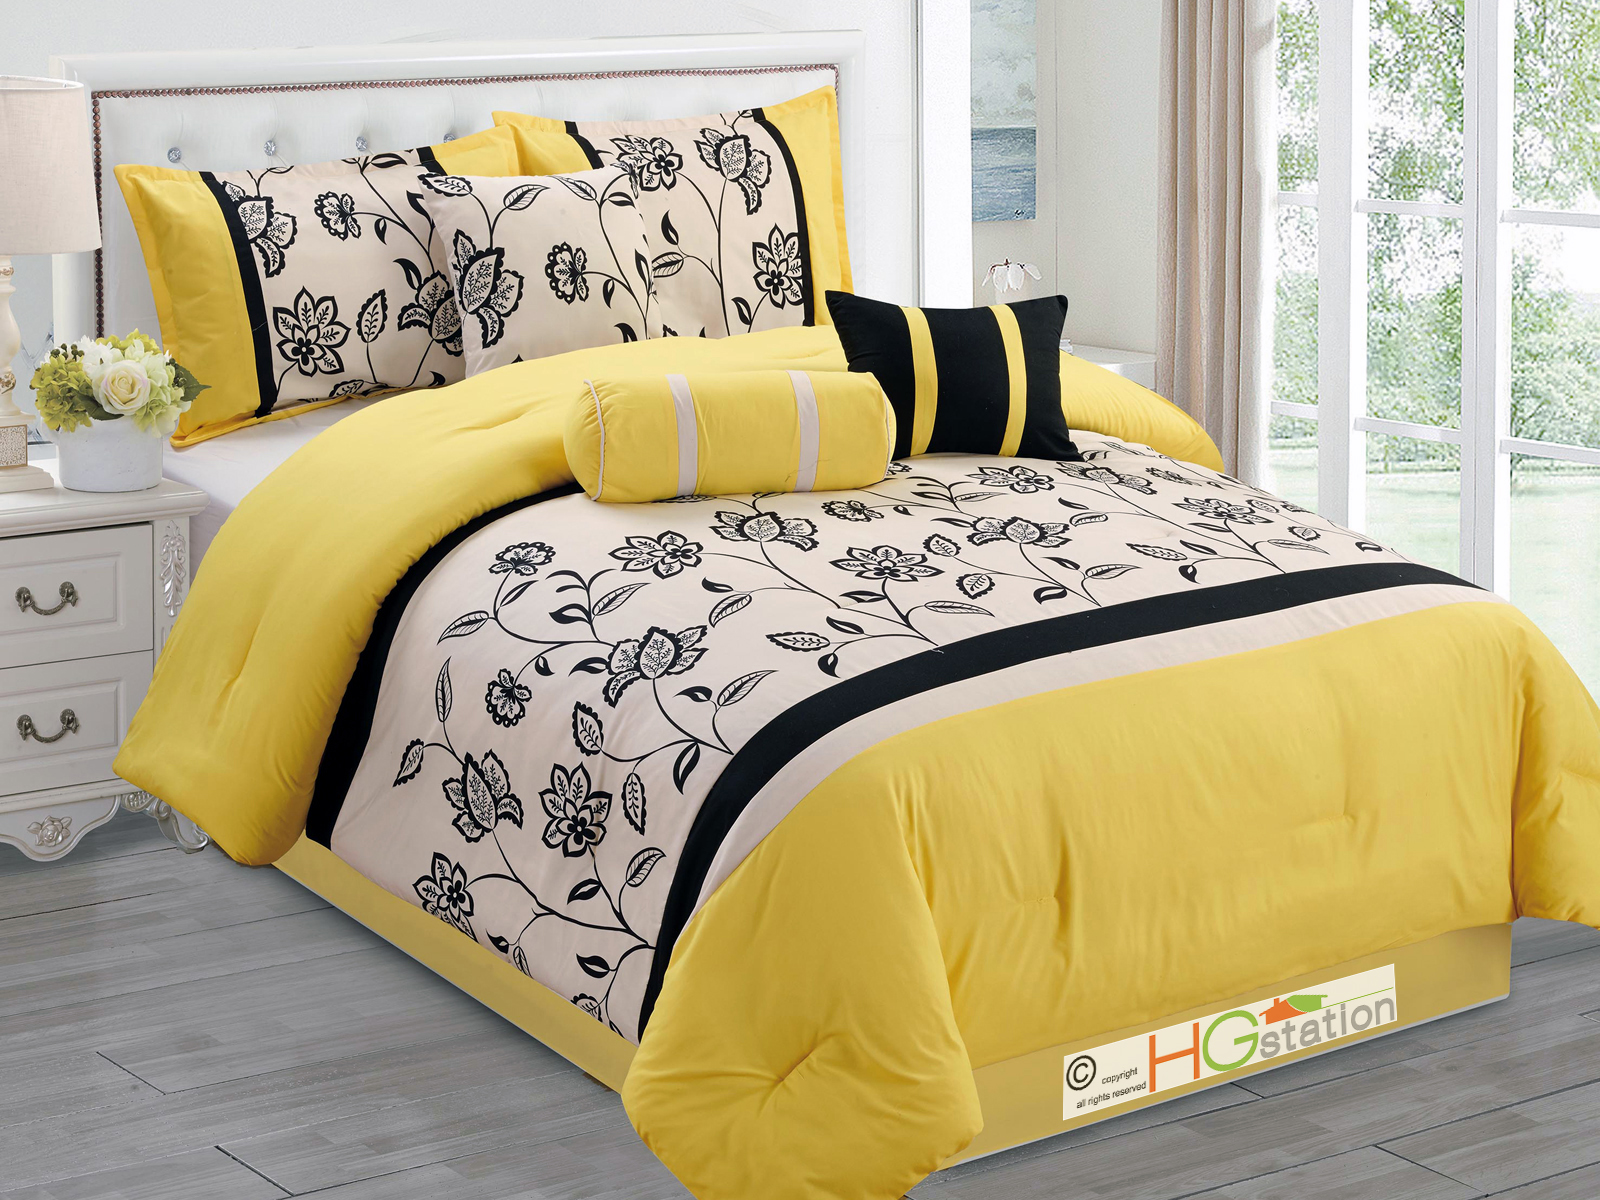 Black And Yellow Comforter Queen